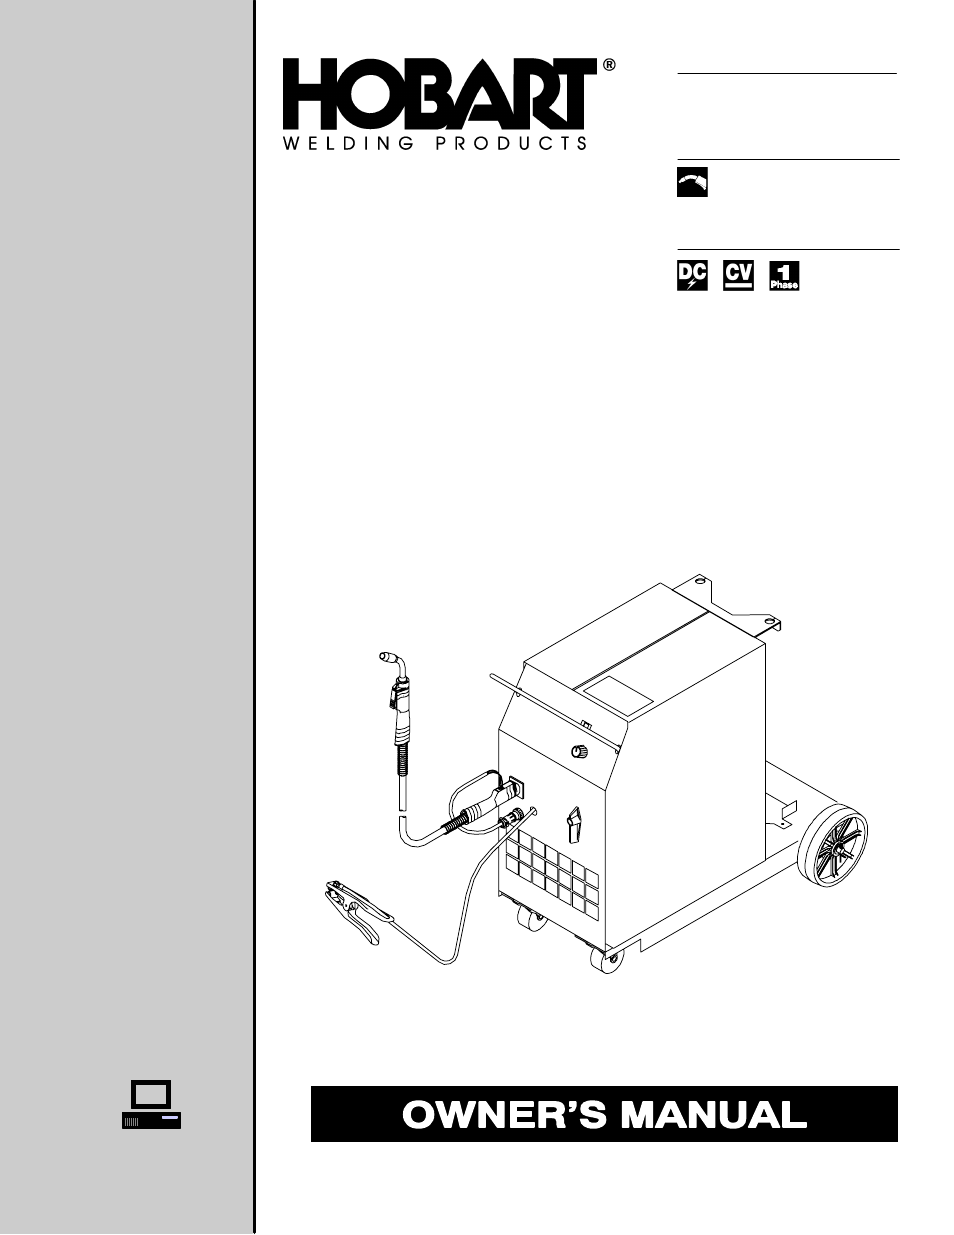 Hobart Welding Products BETA-MIG 1800 User Manual | 36 pages